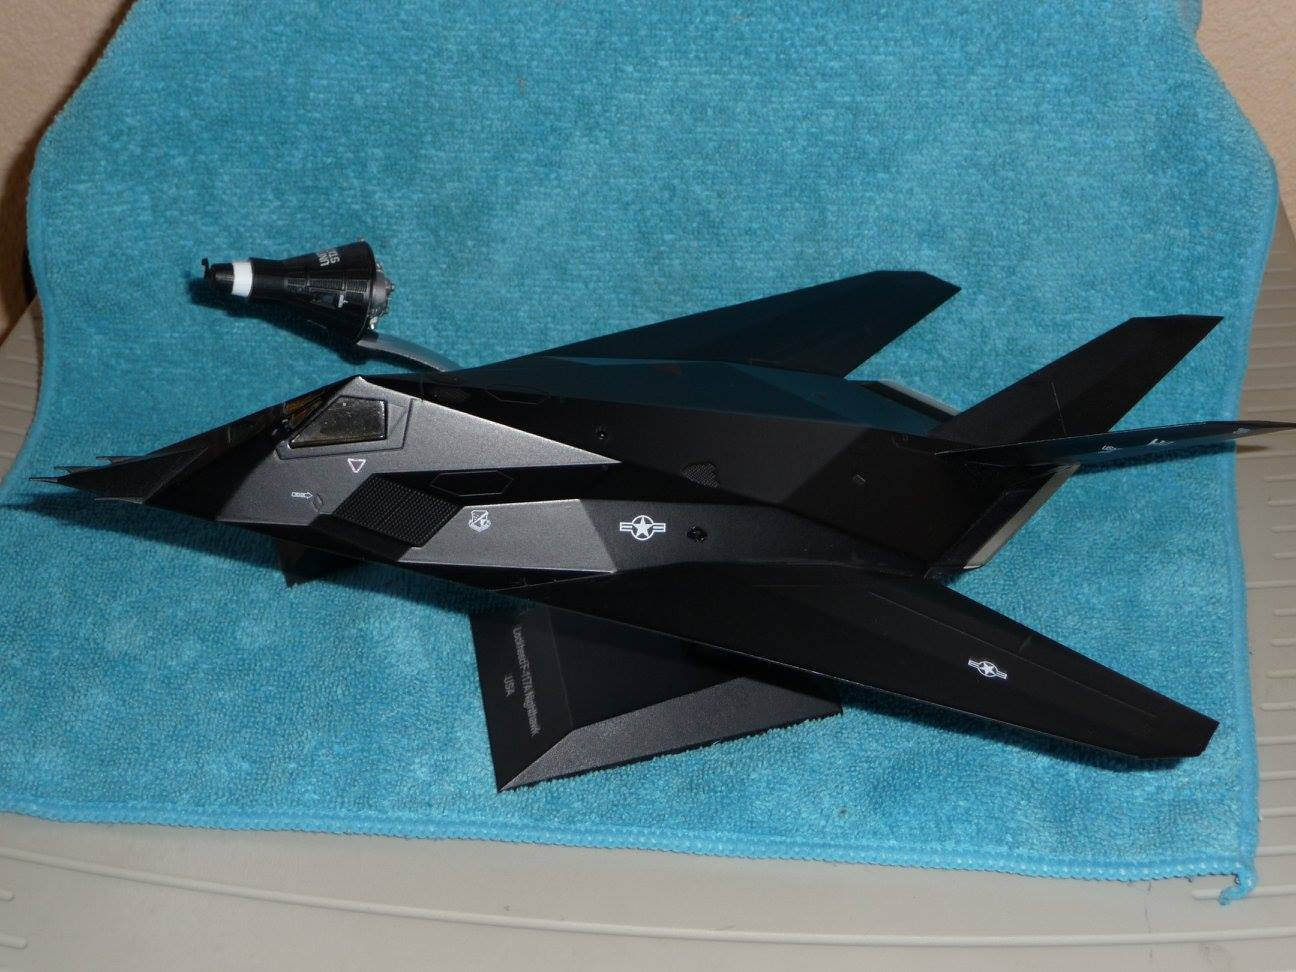 F-117 Nighthawk / Mercury Spaceship